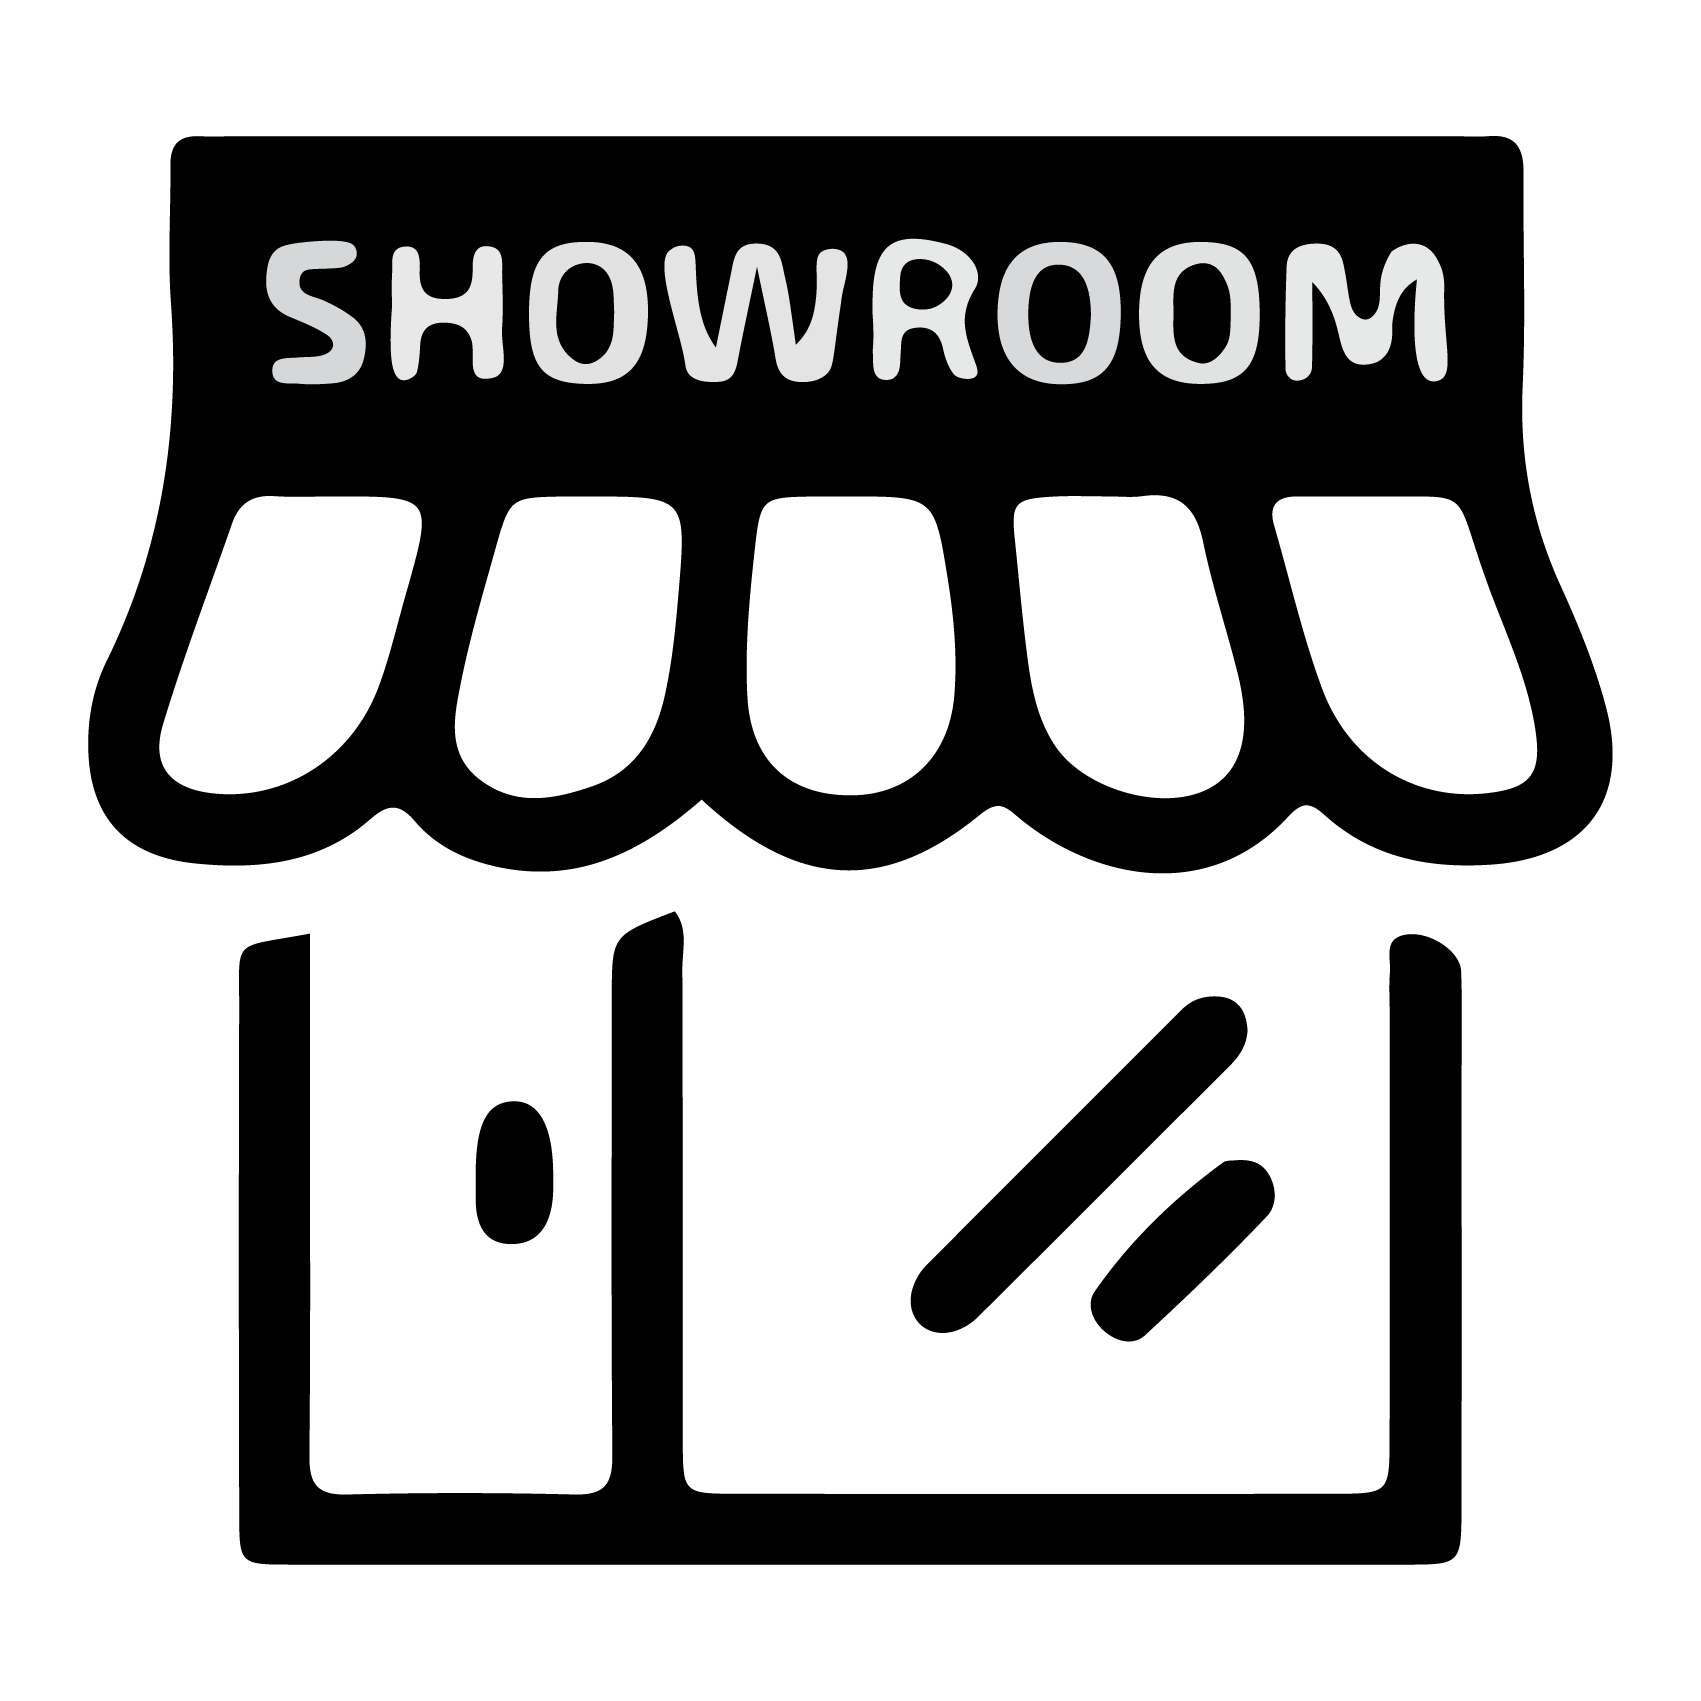 iconeshowroom